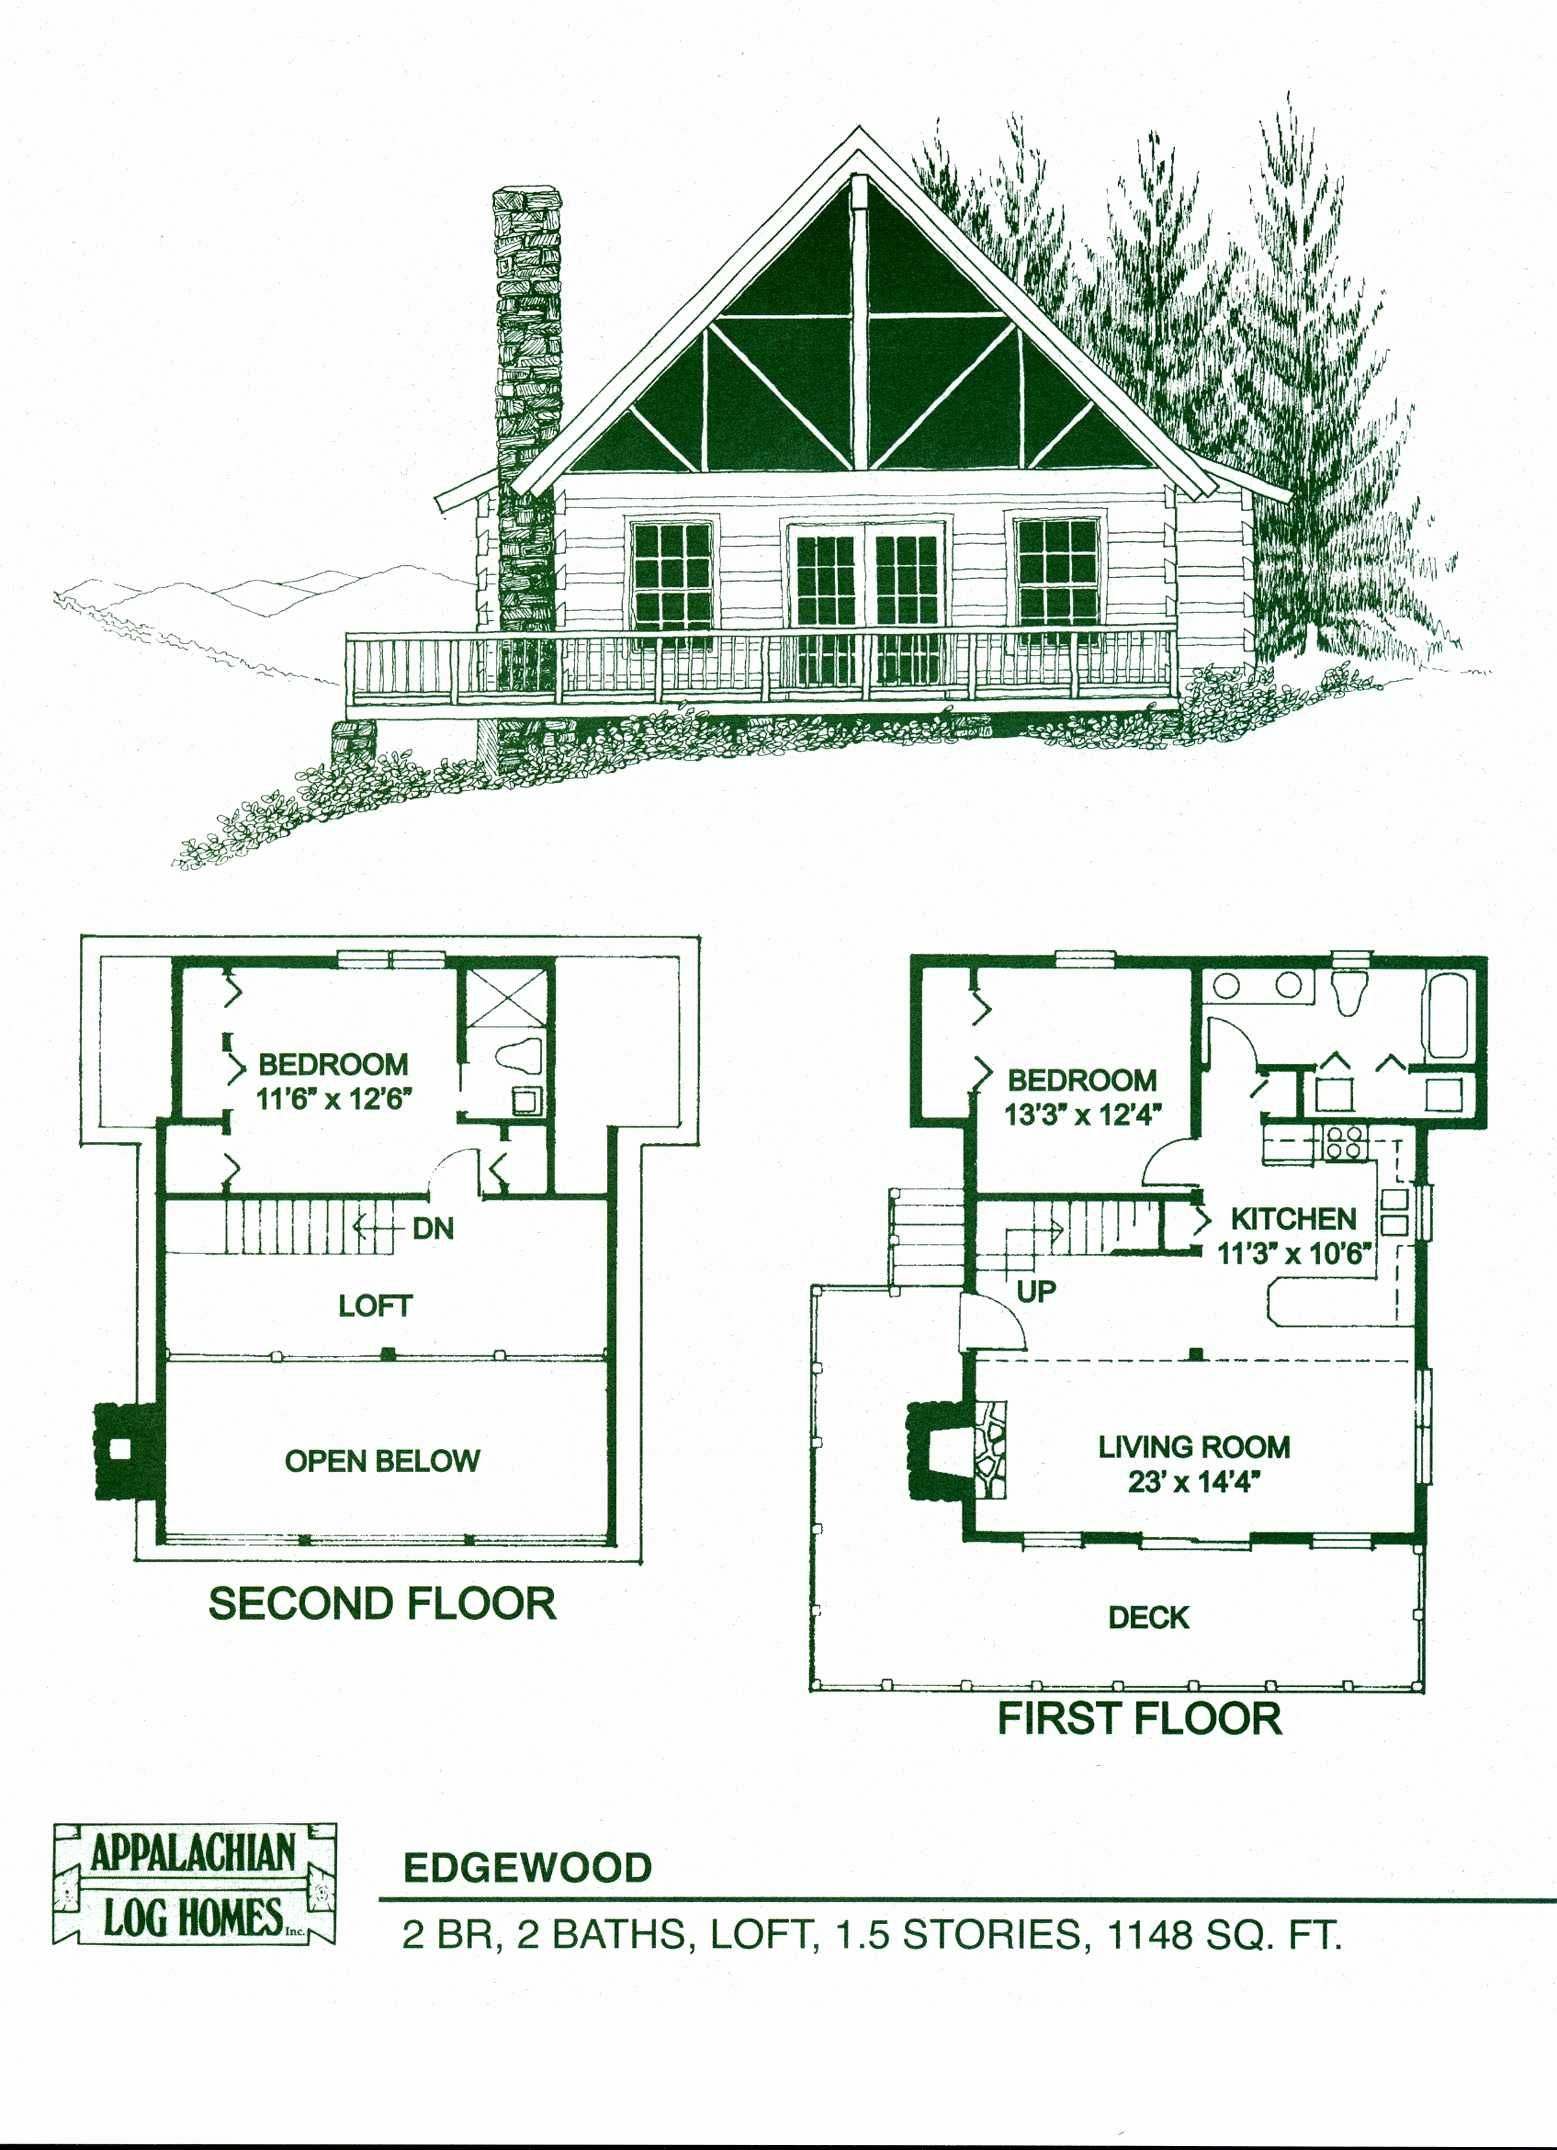 Haunted House Drawing Ideas Unique Haunted House Drawing Ideas Draw House Plans For Free New Flo Log Cabin Floor Plans Log Cabin Plans Log Home Floor Plans